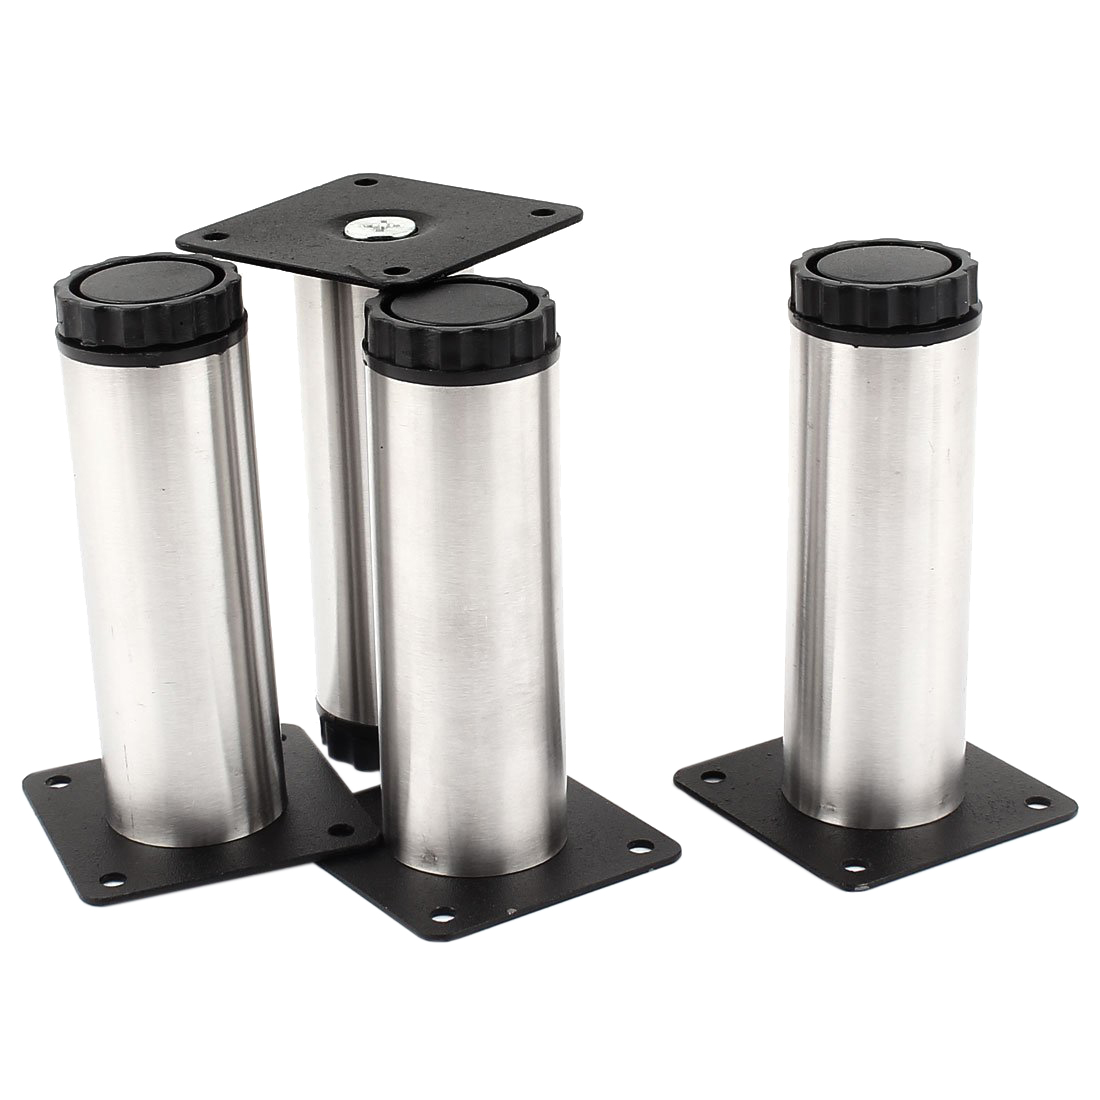 Adjustable Kitchen Cabinet Legs: Kitchen Cupboard Cylinder Adjustable Cabinet Legs Plinth